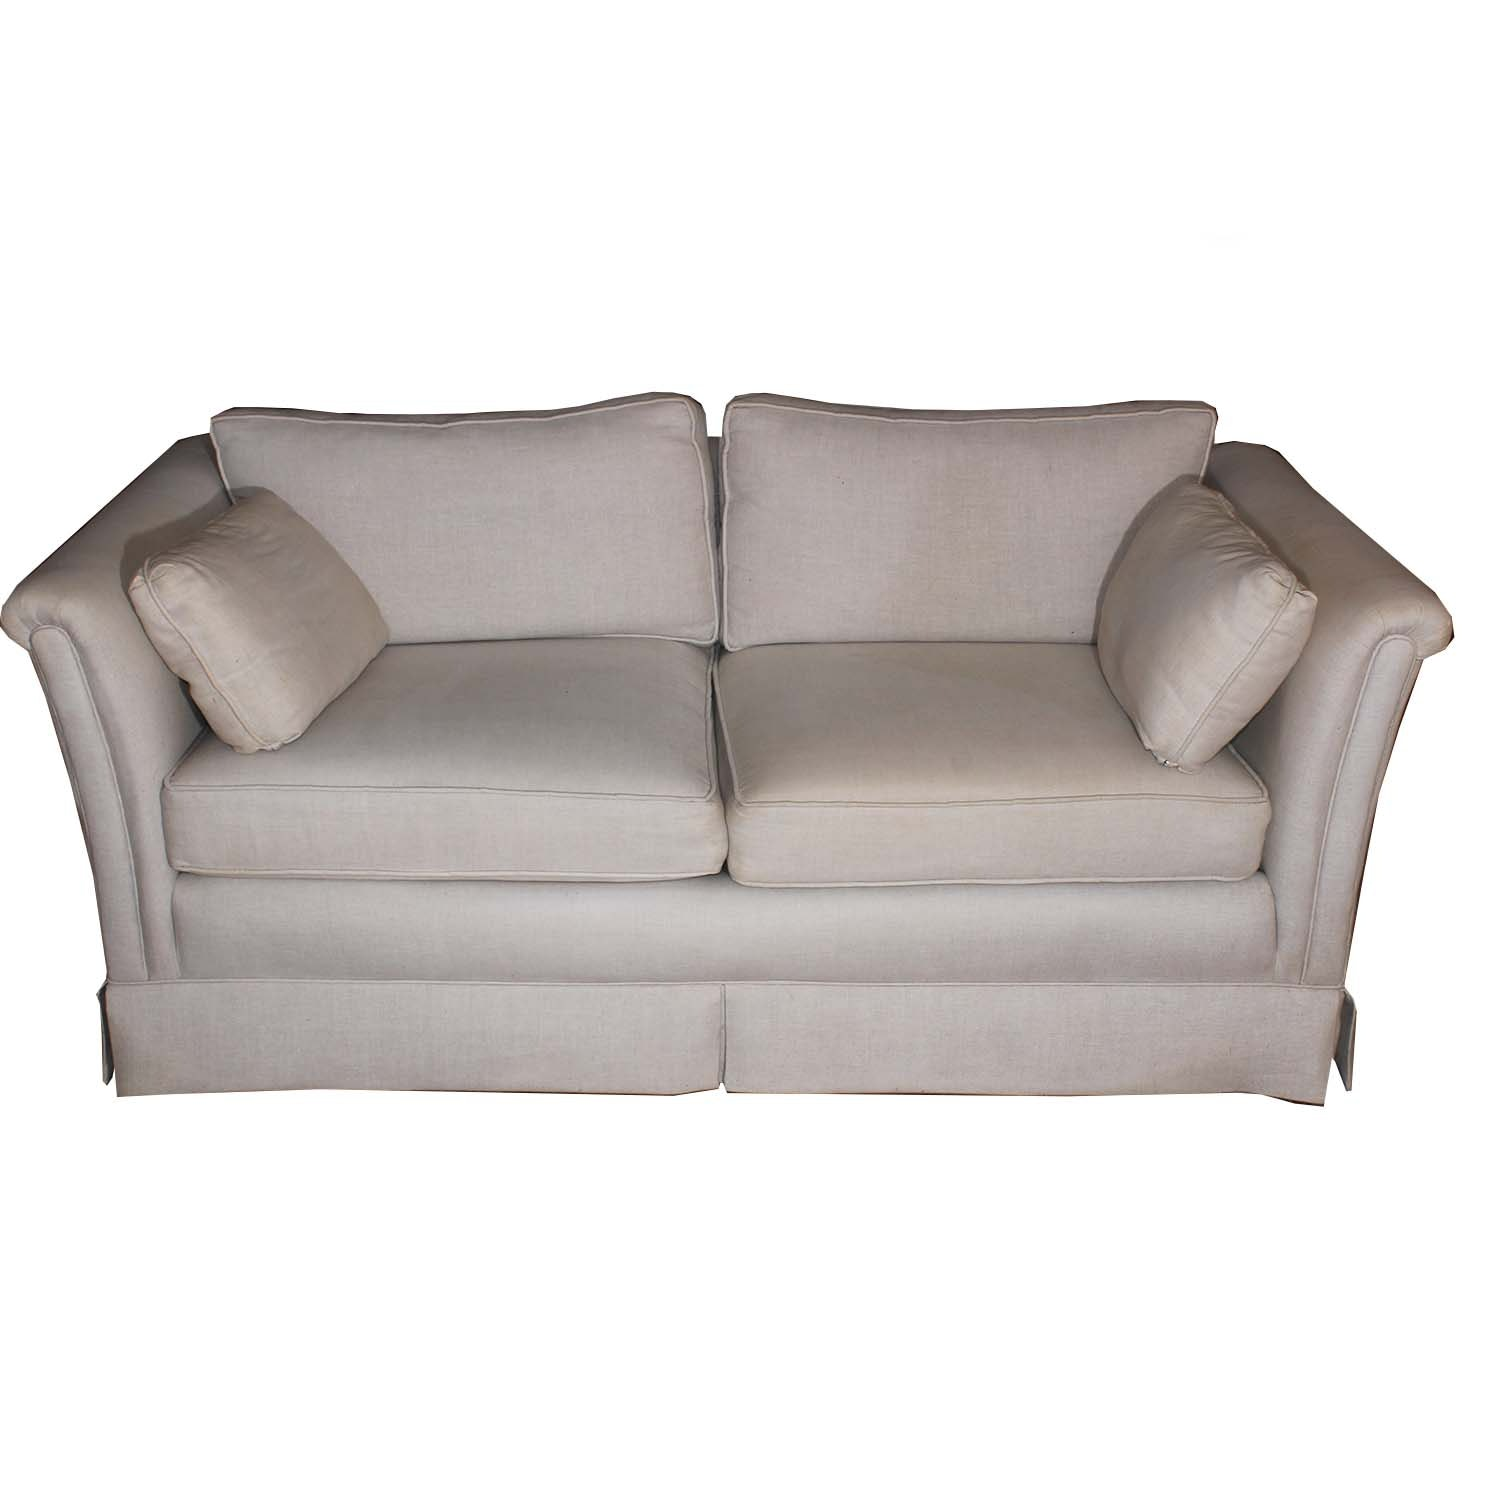 Cream Upholstered Loveseat Sofa